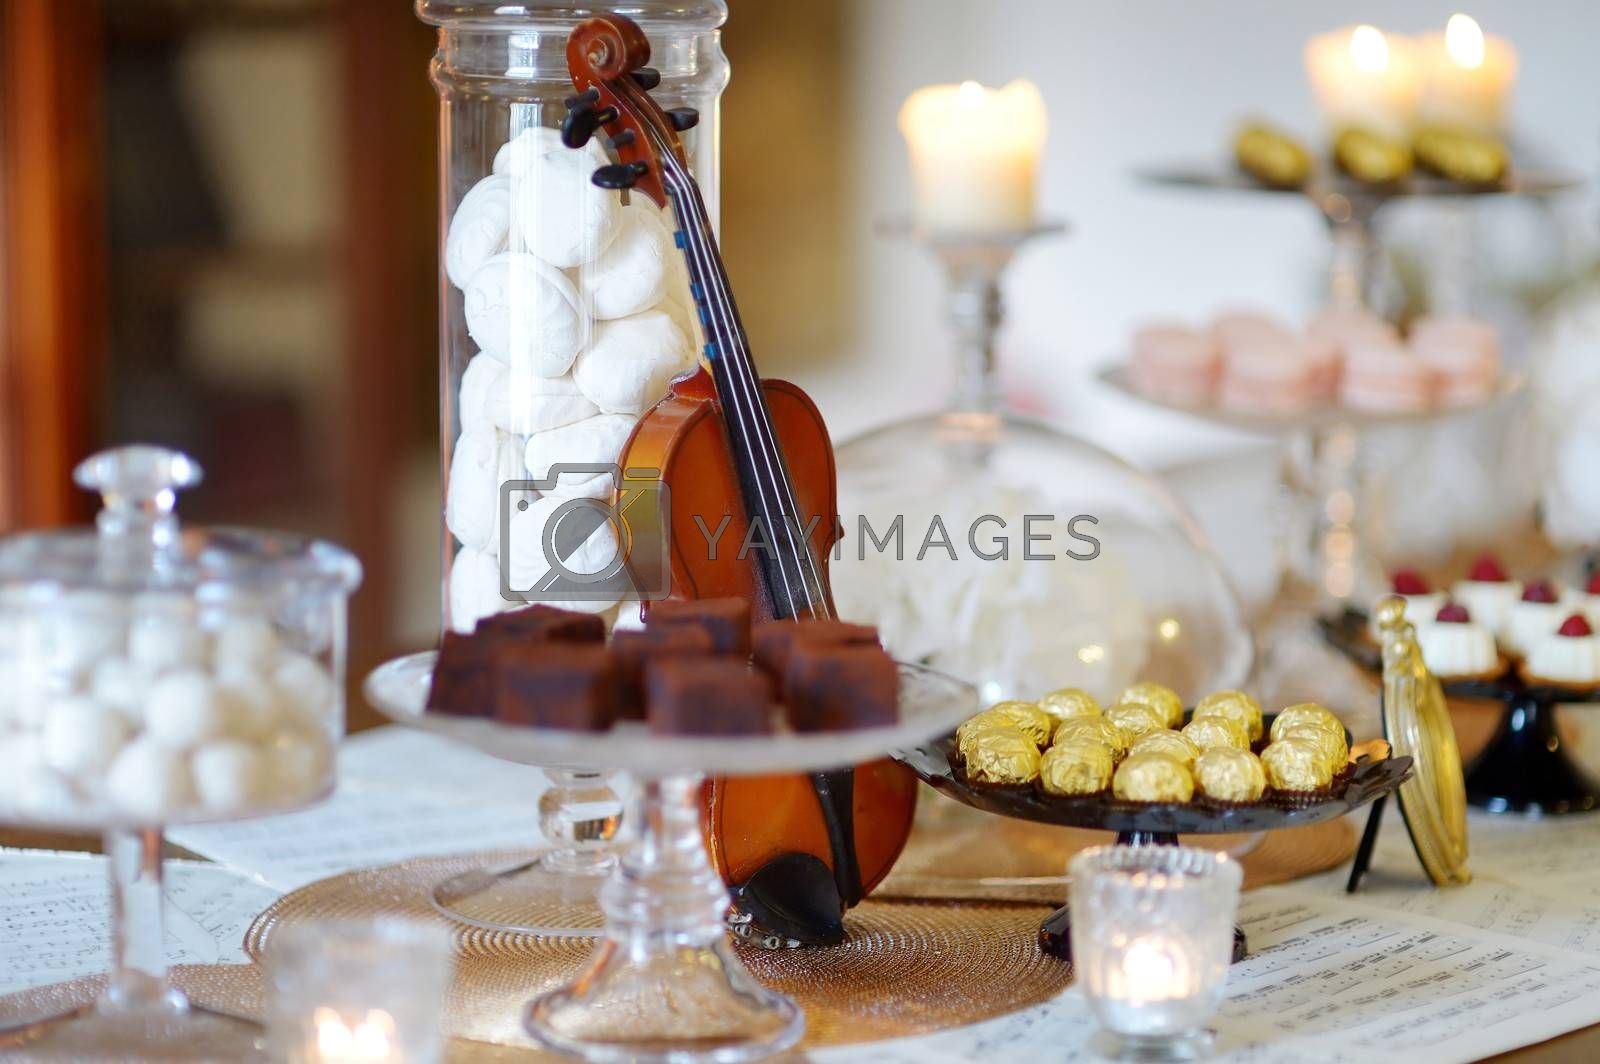 Royalty free image of Beautiful desserts, sweets and candy table by maximkabb